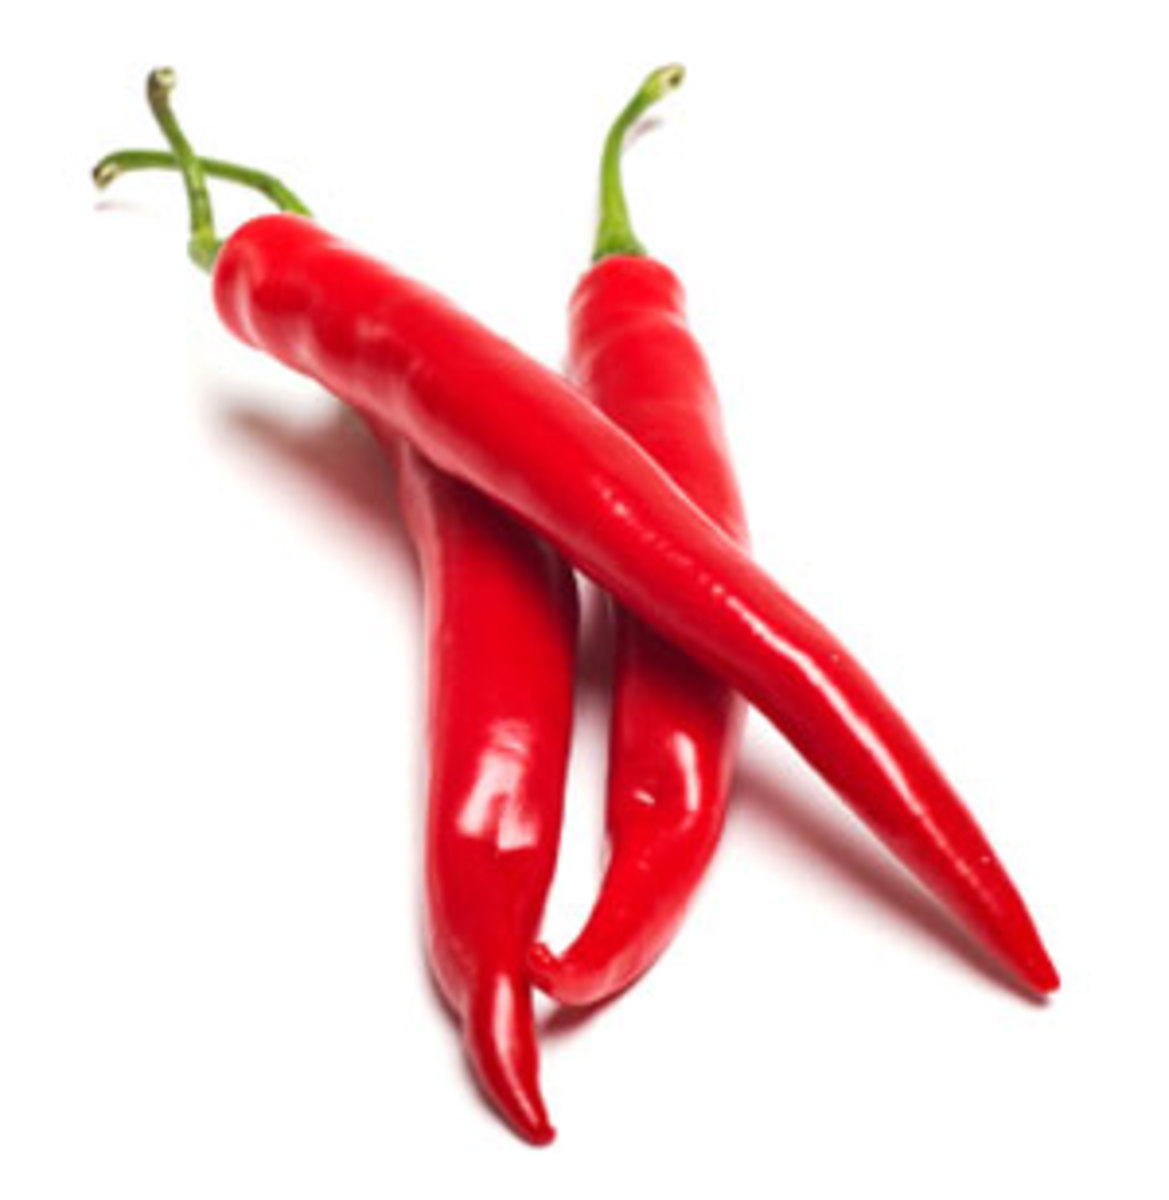 17 Health Benefits of Cayenne Pepper